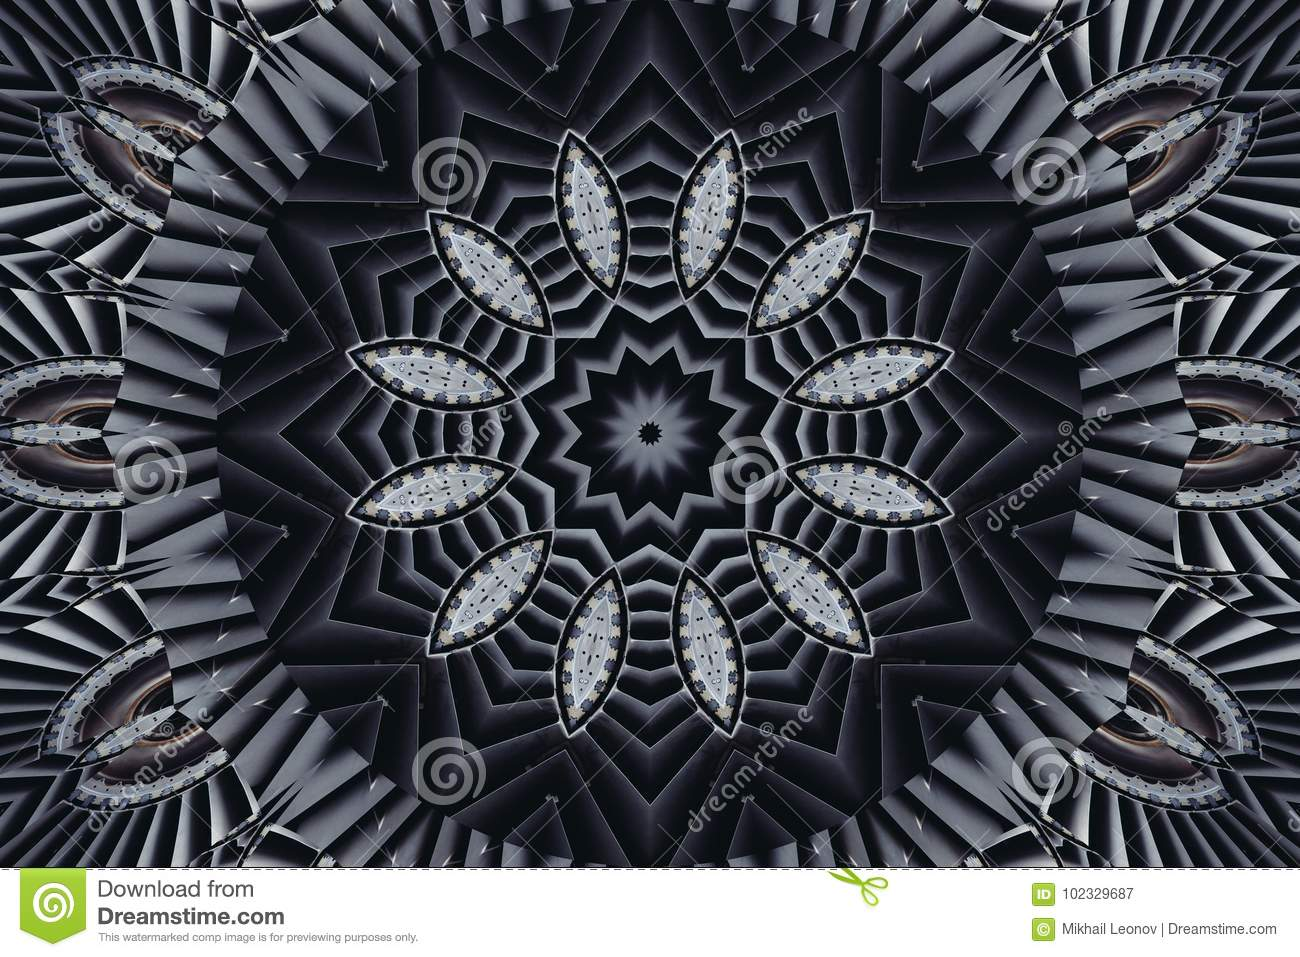 Kaleidoscope pattern abstract background. Round pattern. Architectural abstract fractal kaleidoscope background. Abstract turbine